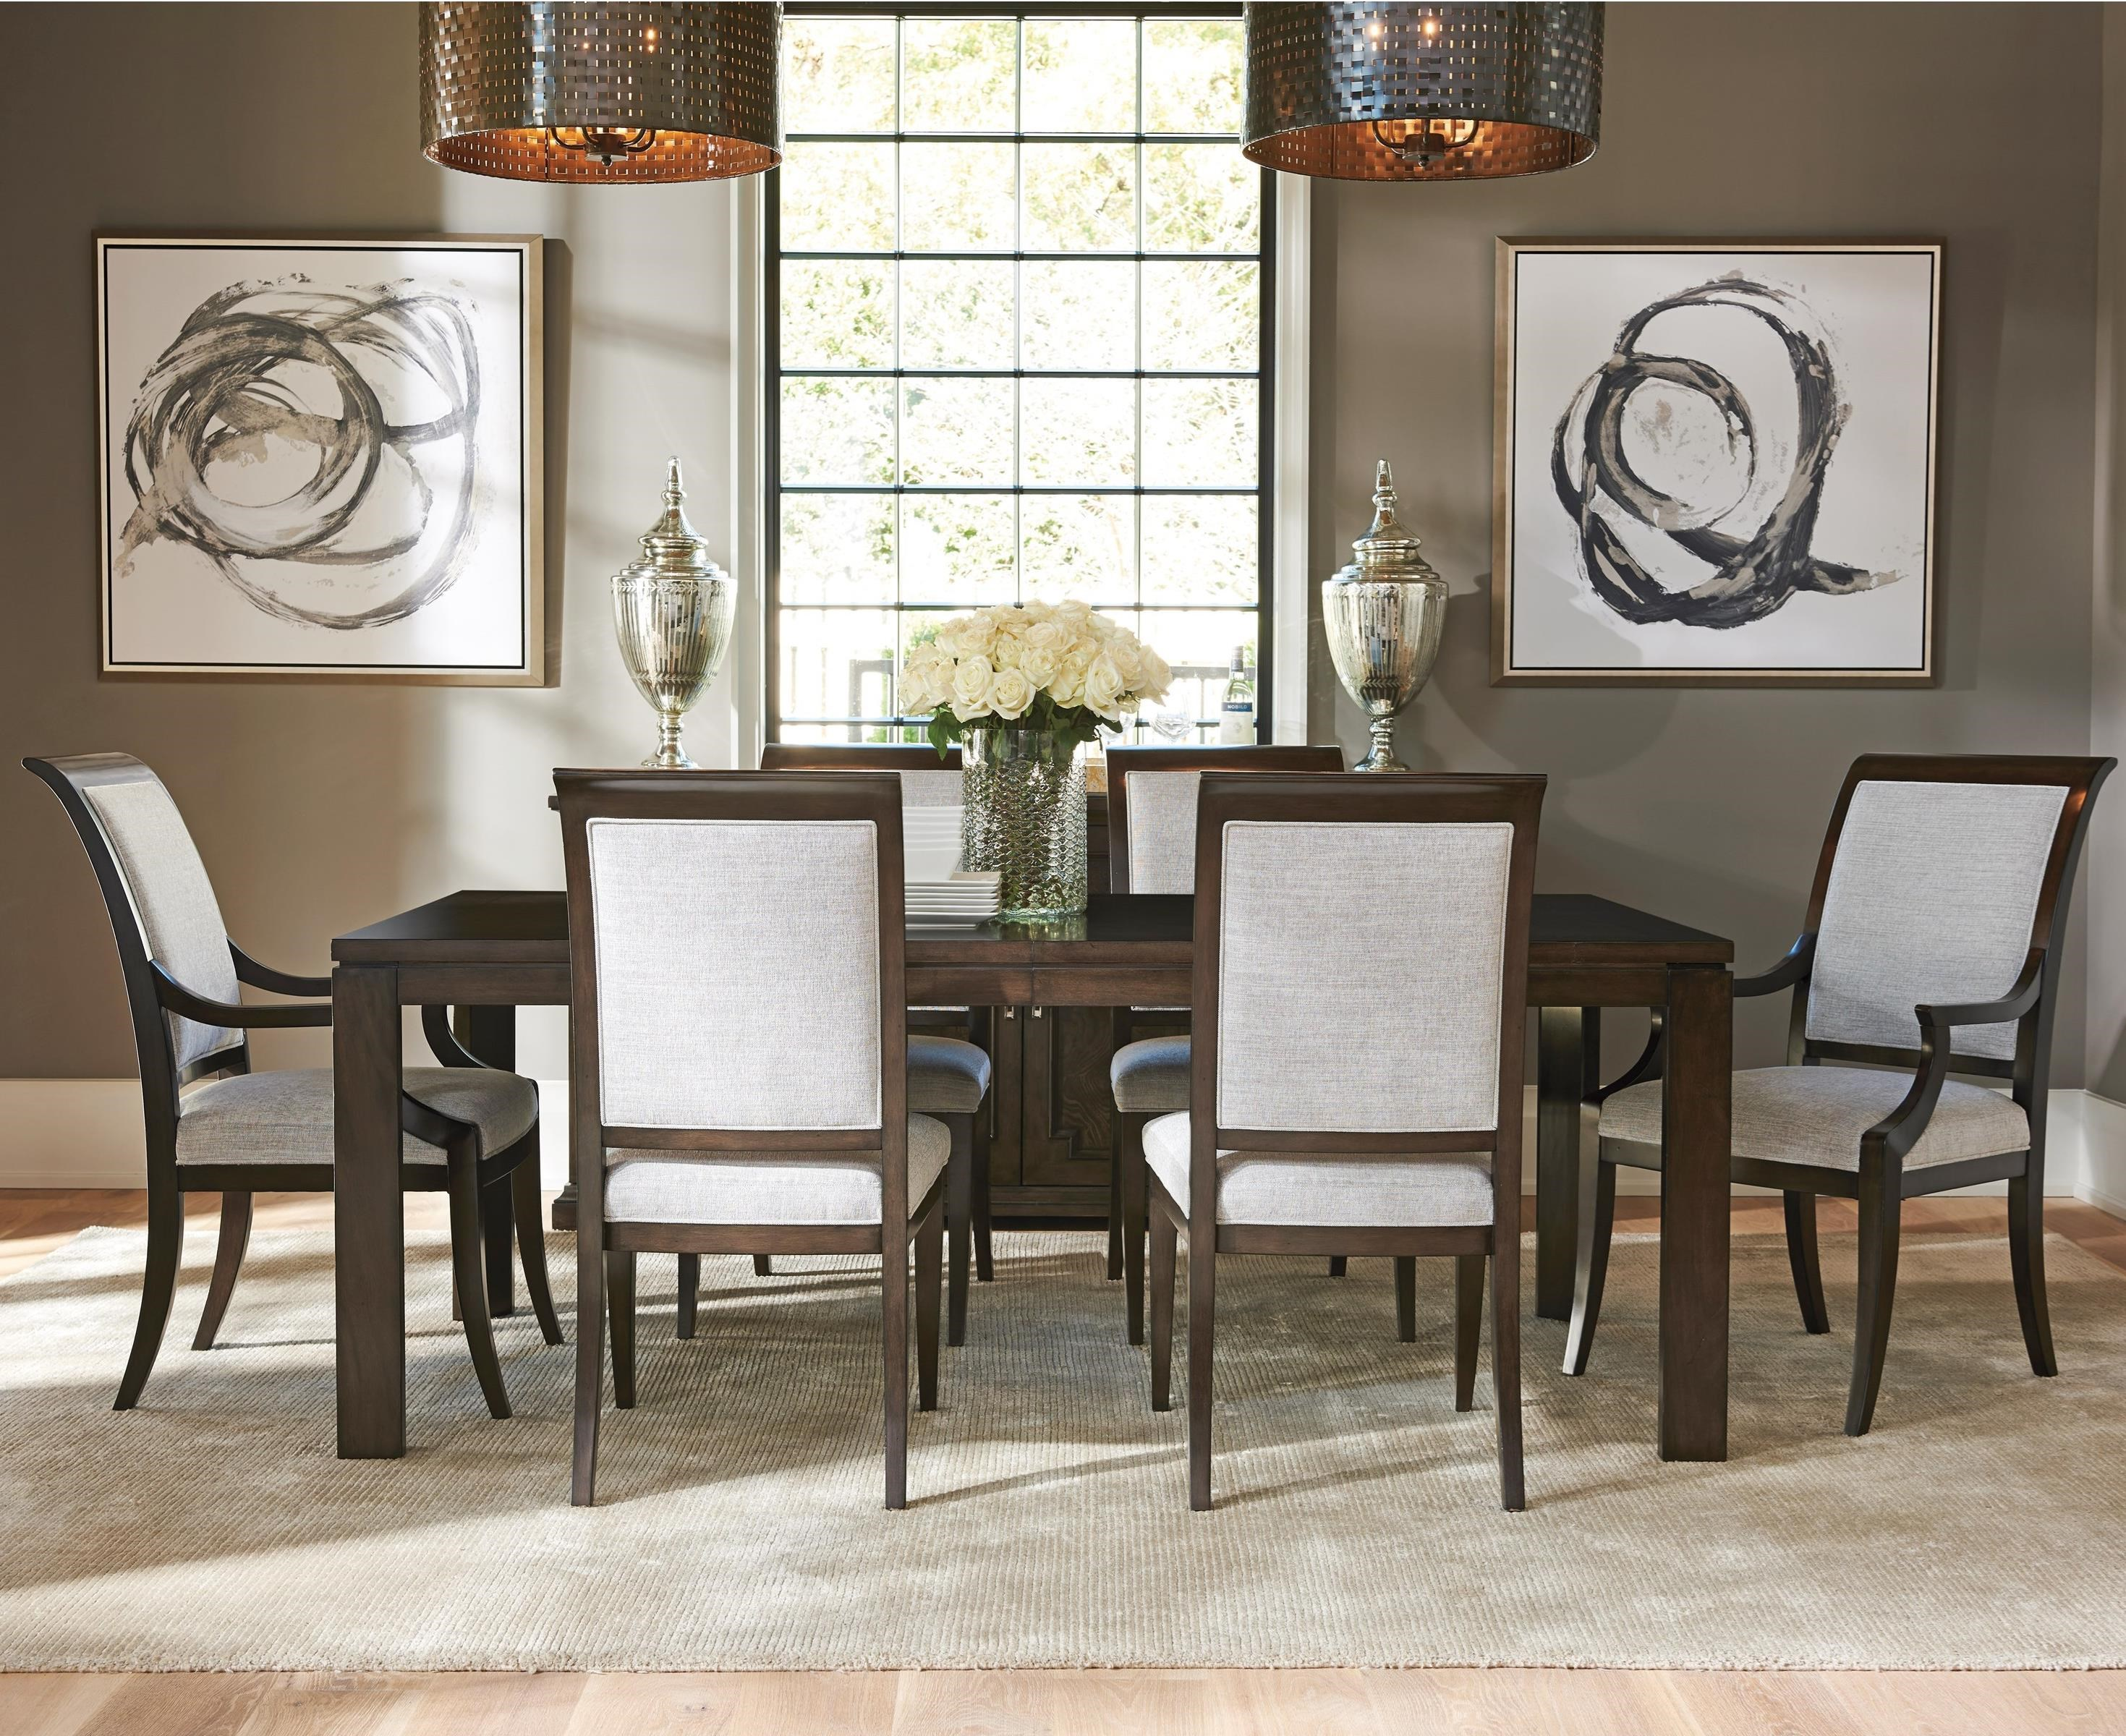 Barclay Butera Brentwood 7 Pc Dining Set - Item Number: 915-877+2X881-01+4X880-01